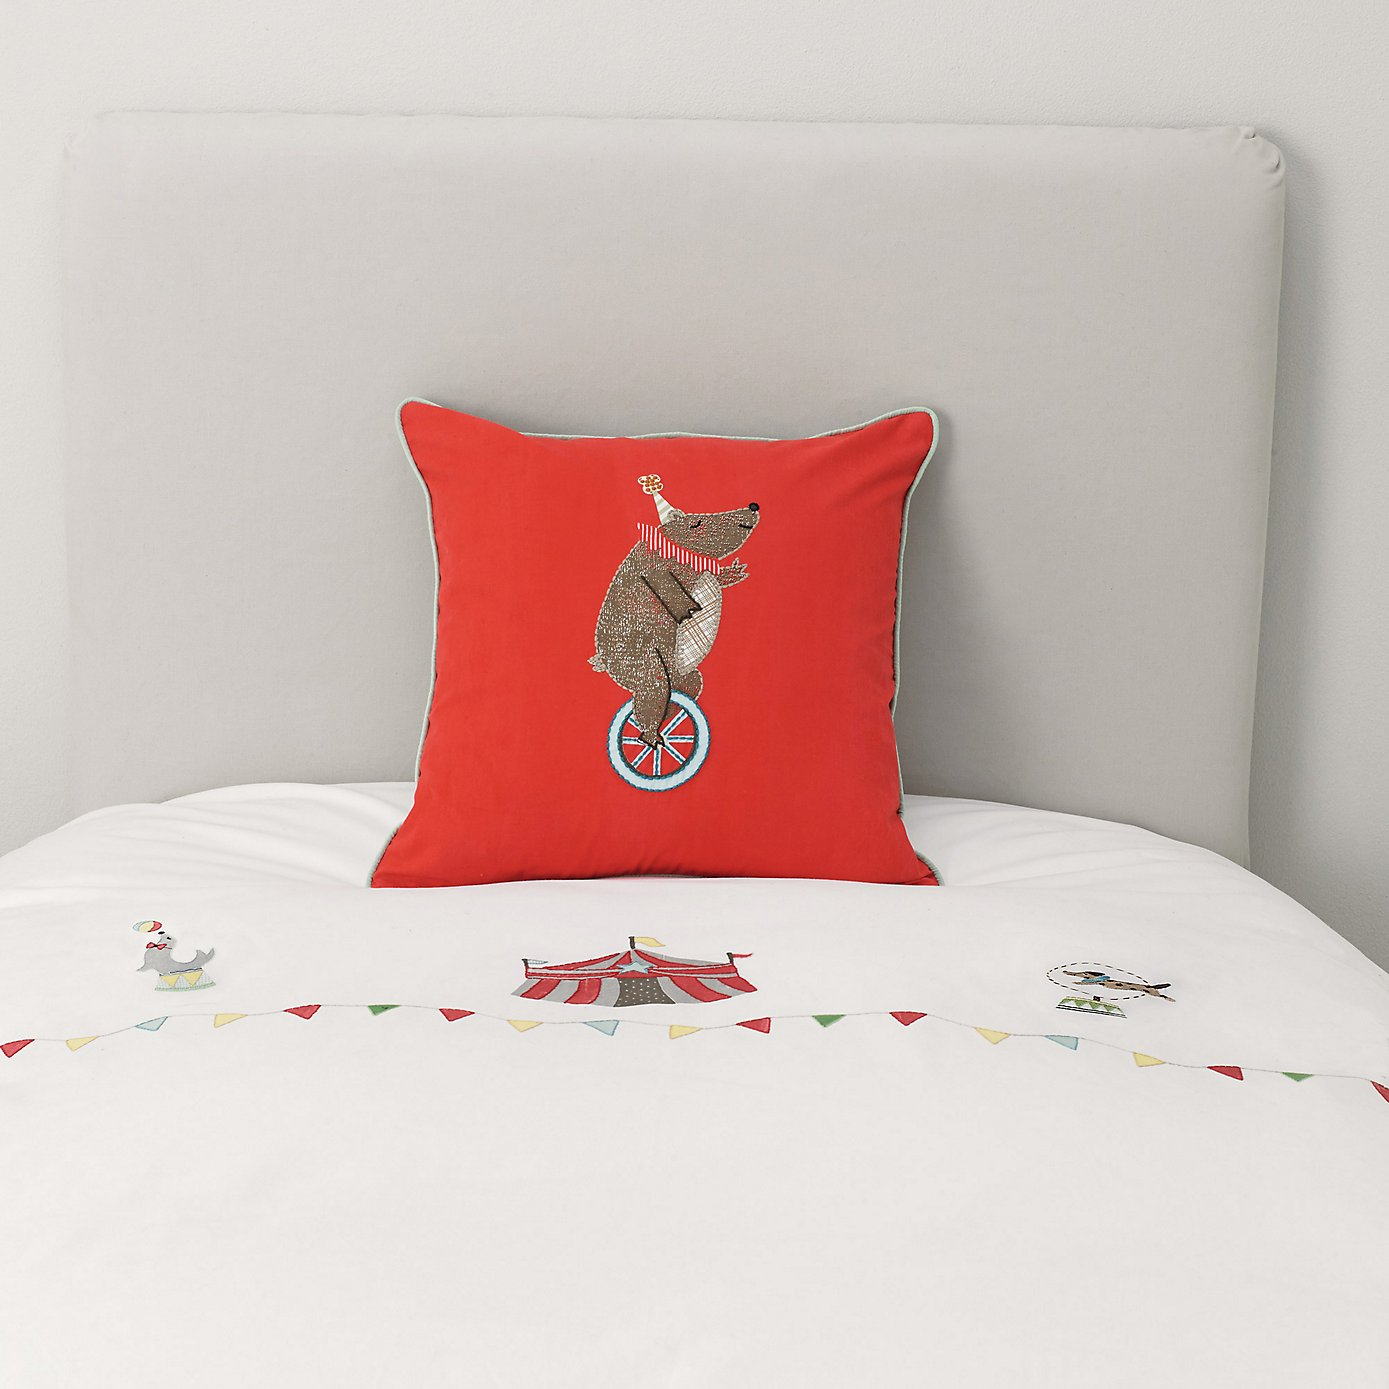 Circus Pillow from The Little White Company #Giveaway  CLOSED